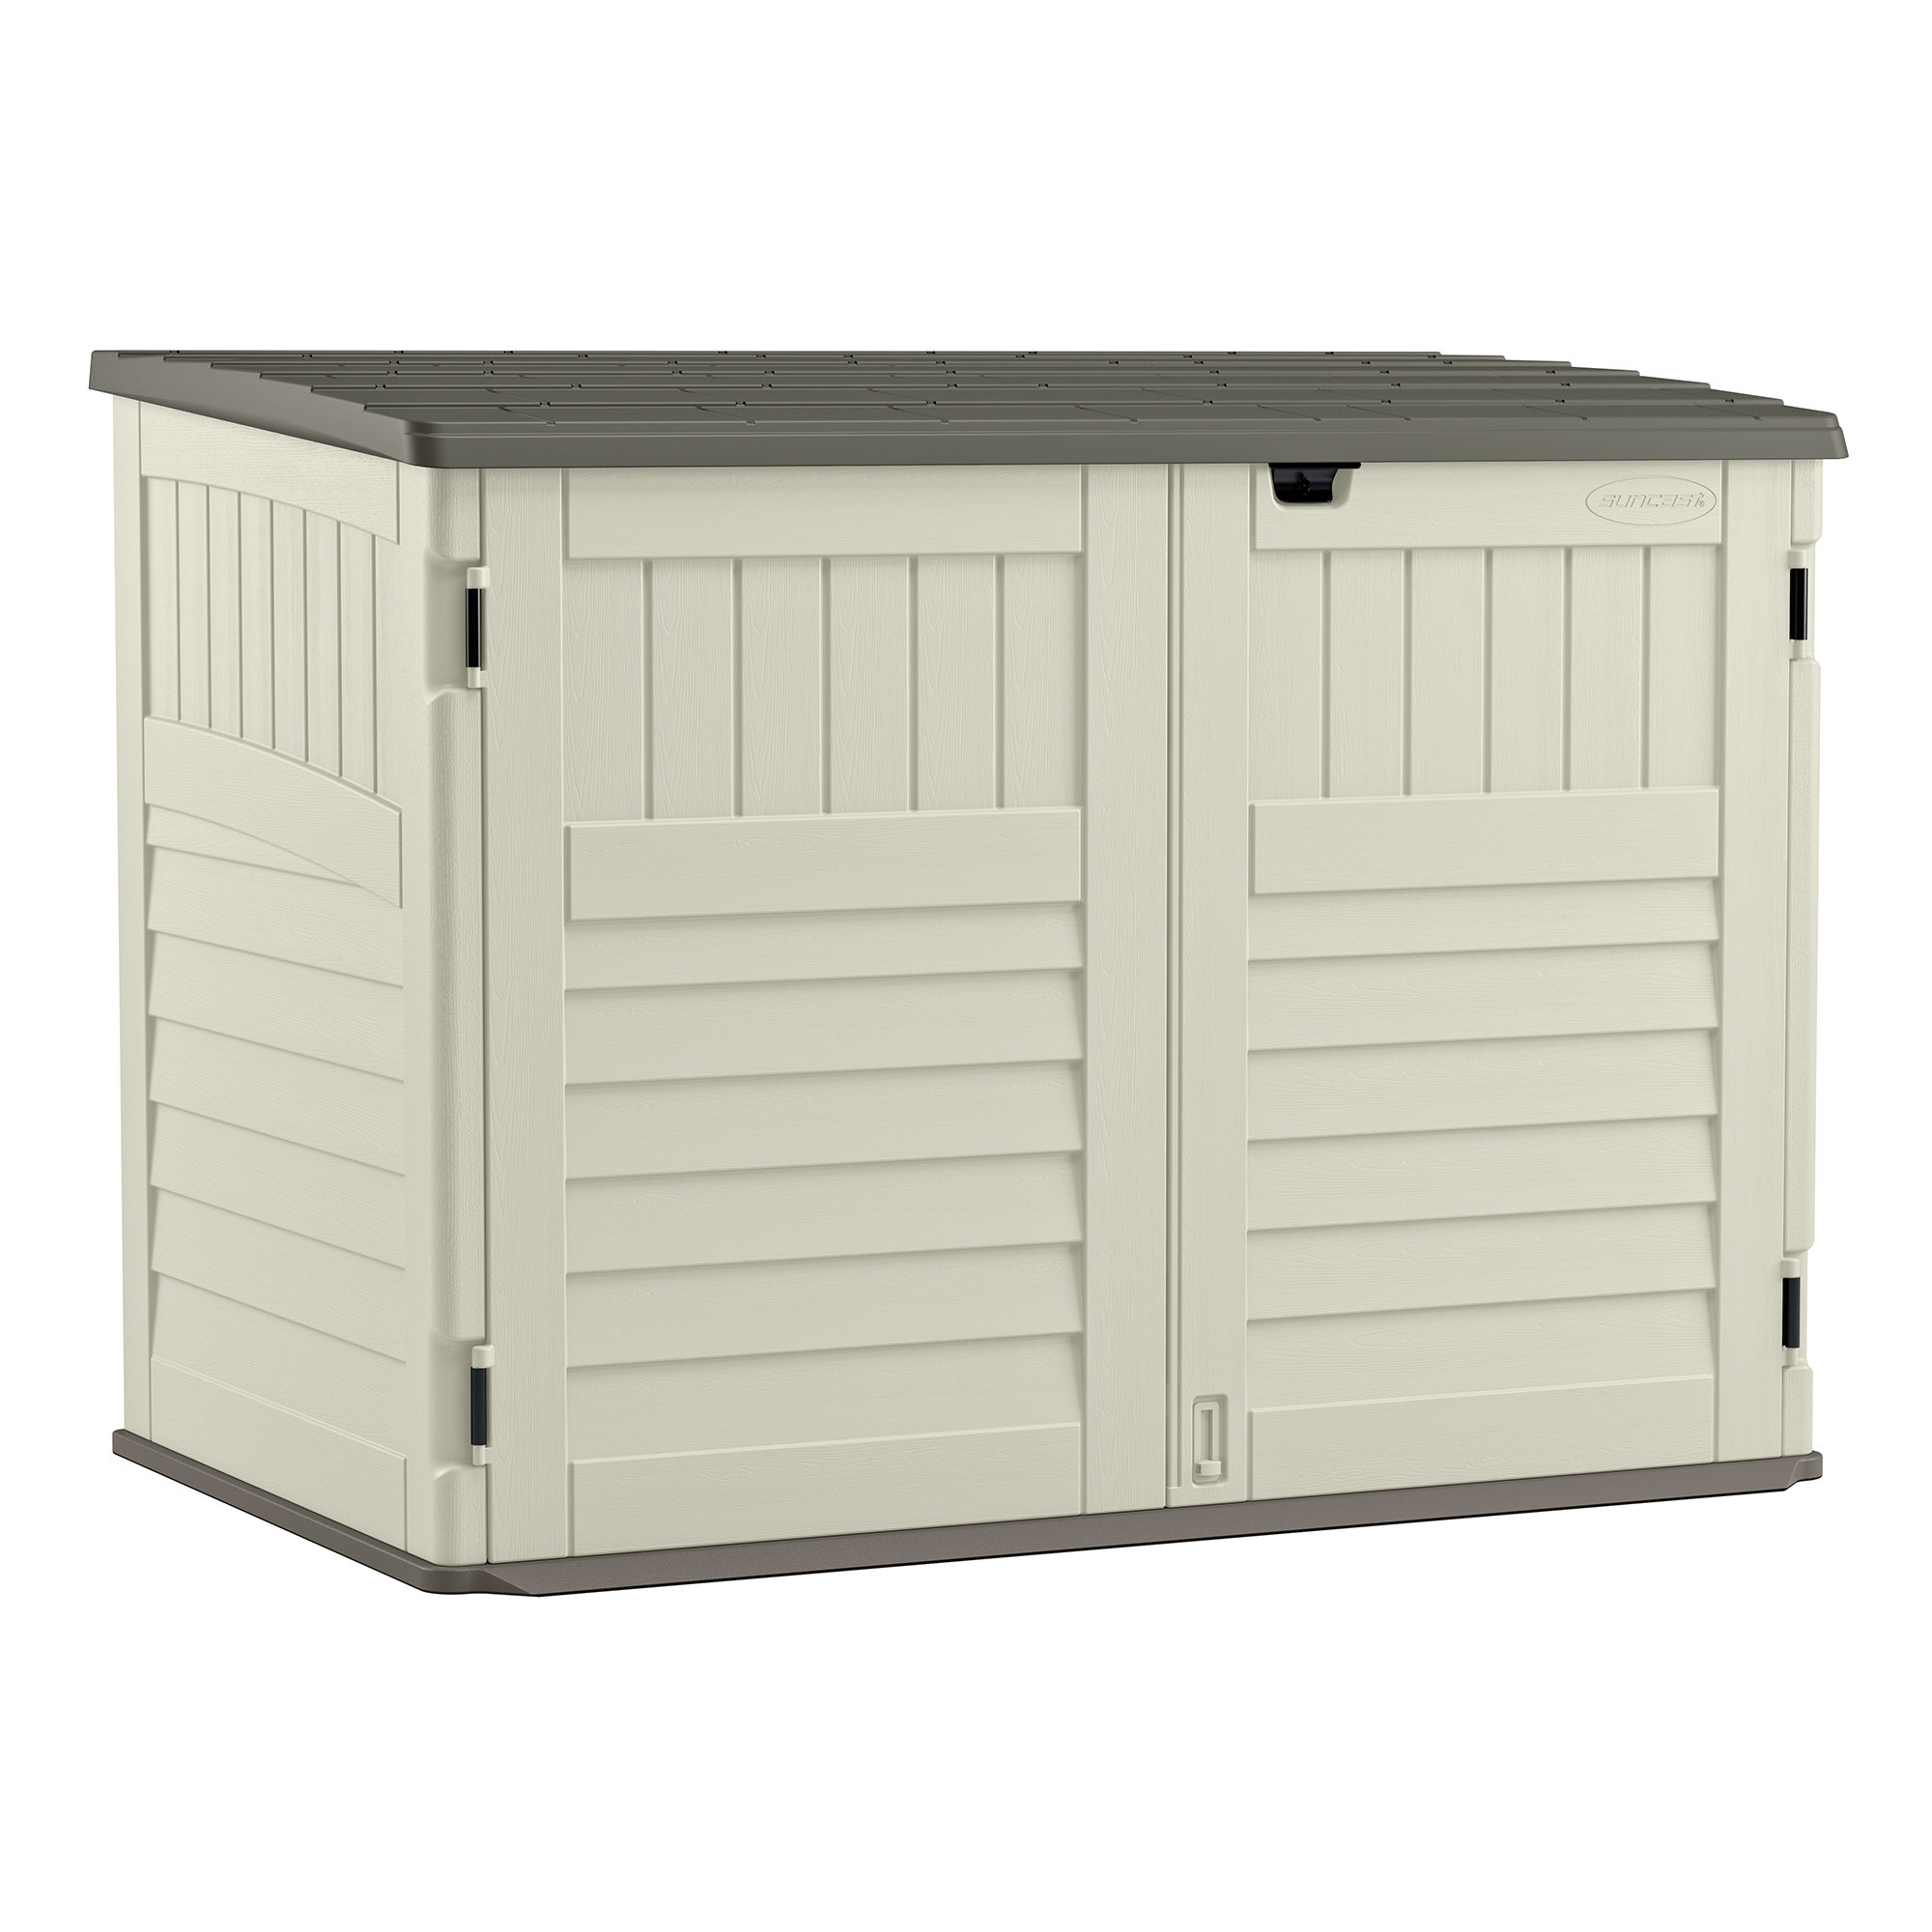 product horizontal cu shop tool shed suncast ft model sheds storage northern tools